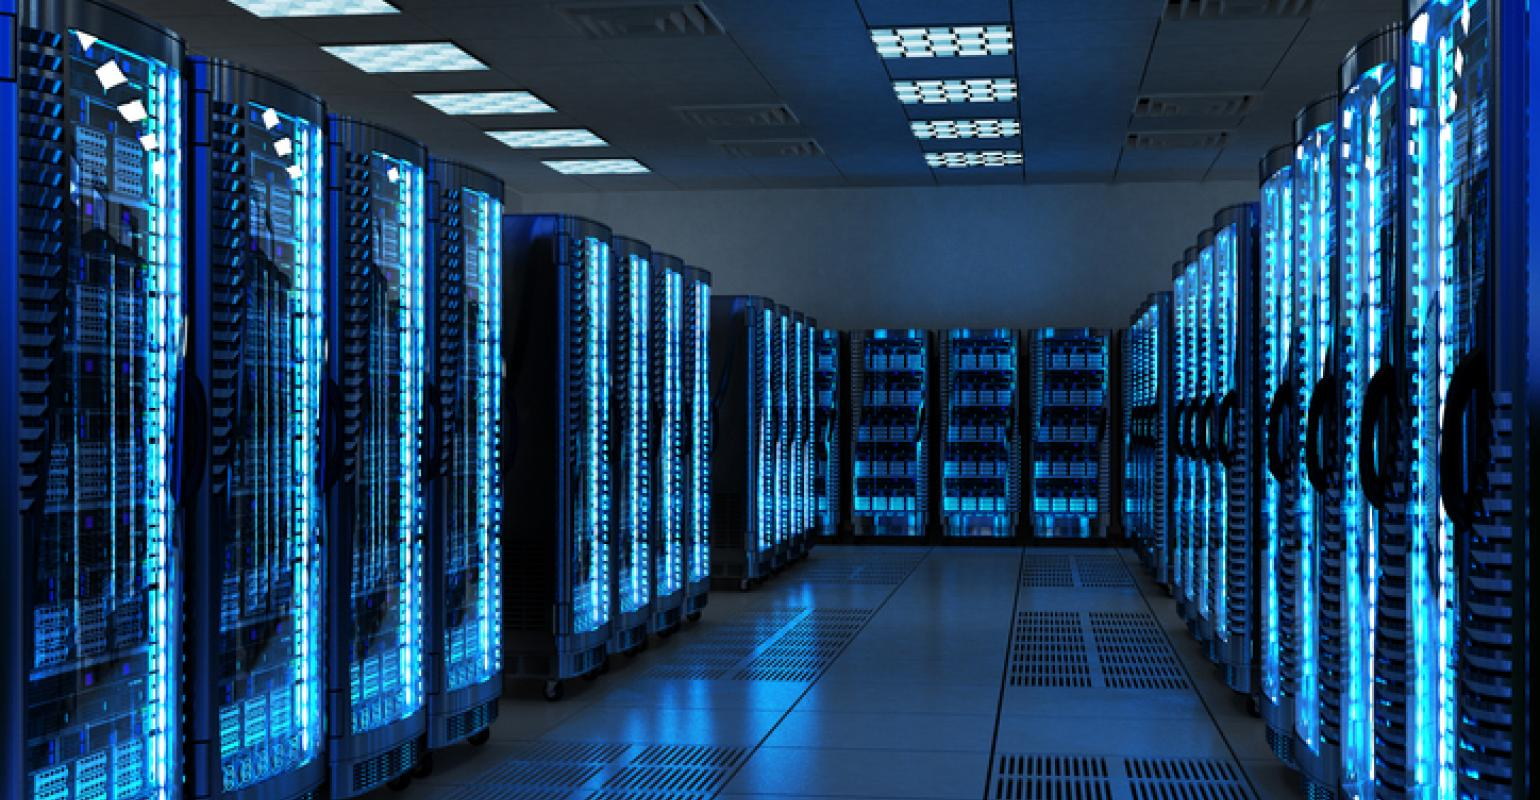 Hyperscale Data Centers | Data Center Knowledge